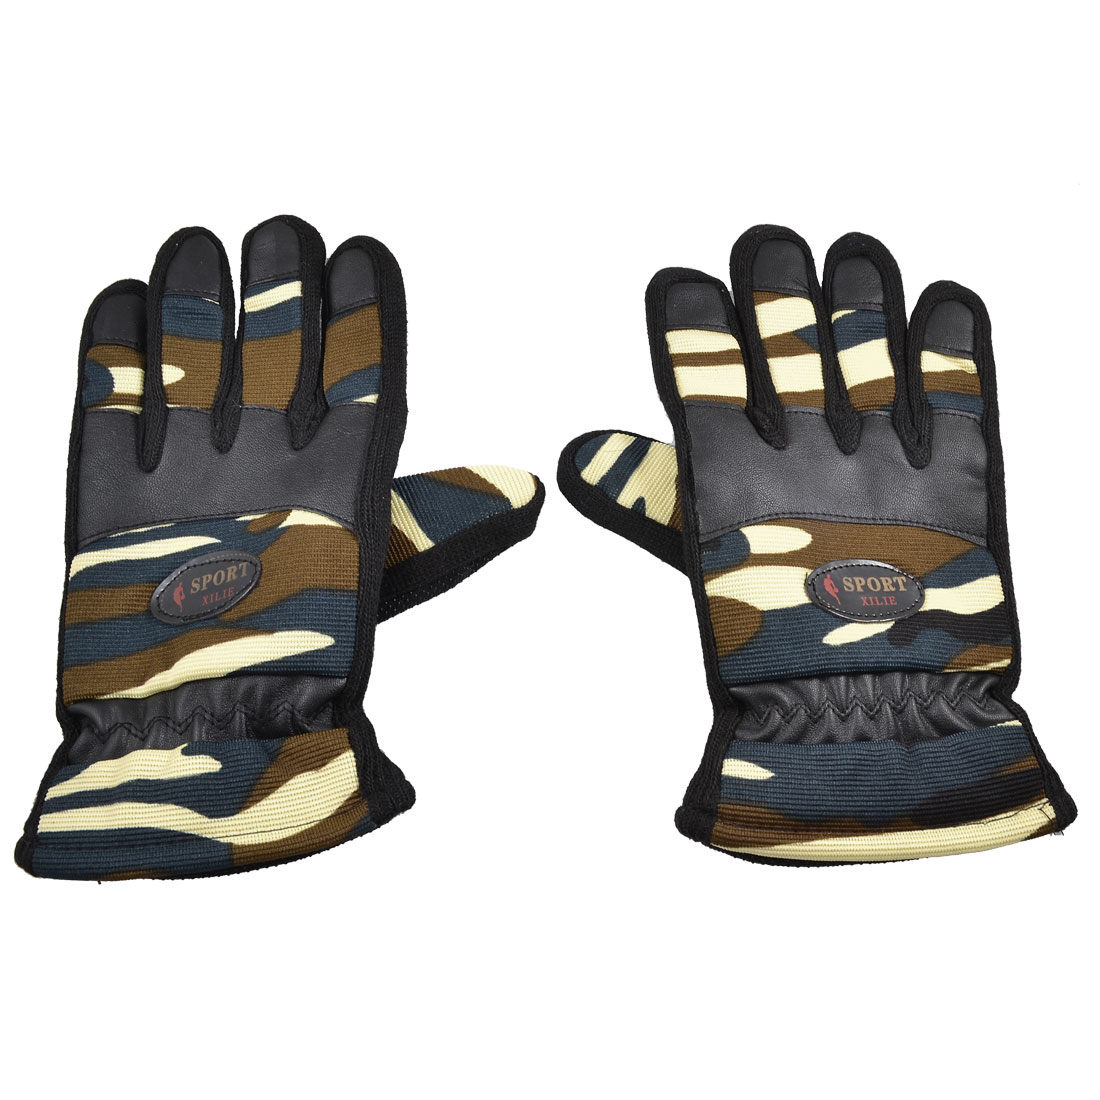 Man Black Camouflage Faux Leather Full Fingers Sports Warmer Gloves Pair